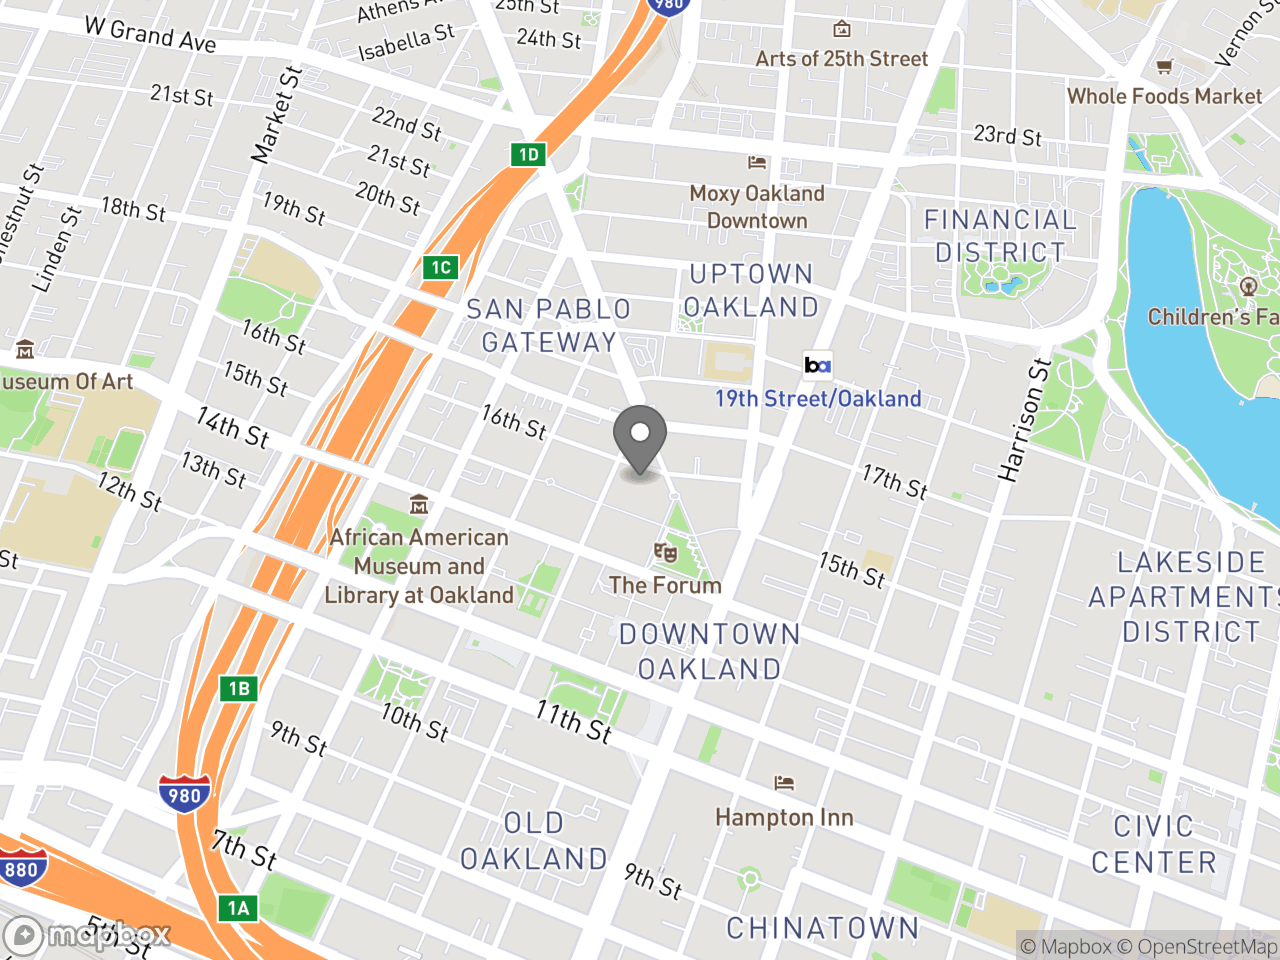 Map location for Parks, Recreation & Youth Development, located at 250 Frank H Ogawa Plaza in Oakland, CA 94612